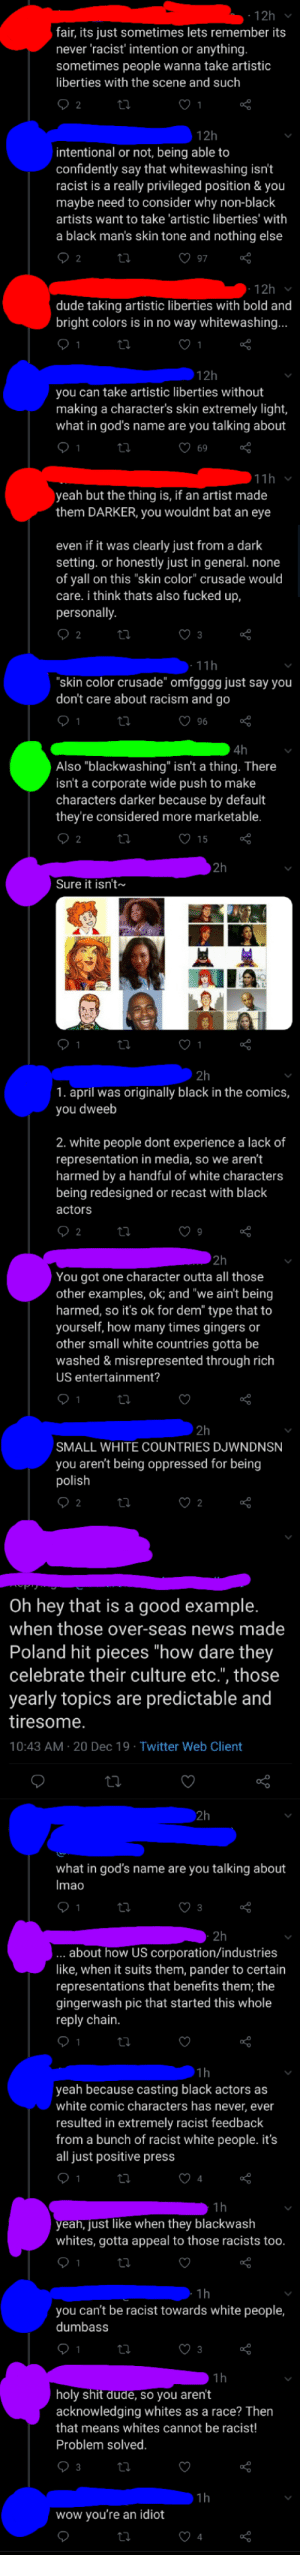 "Someone decided to start yet another argument about whitewashing black pokemon characters with lighting: 12h  fair, its just sometimes lets remember its  never 'racist' intention or anything.  sometimes people wanna take artistic  liberties with the scene and such  ♡ 2  ♡ 1  12h  intentional or not, being able to  confidently say that whitewashing isn't  racist is a really privileged position & you  maybe need to consider why non-black  artists want to take 'artistic liberties' with  a black man's skin tone and nothing else  ♡ 97  12h v  dude taking artistic liberties with bold and  bright colors is in no way whitewashing...  ♡ 1  12h  you can take artistic liberties without  making a character's skin extremely light,  what in god's name are you talking about  ♡ 69  11h v  yeah but the thing is, if an artist made  them DARKER, you wouldnt bat an eye  even if it was clearly just from a dark  setting. or honestly just in general. none  of yall on this ""skin color"" crusade would  care. i think thats also fucked up,  personally.  ♡ 2  · 11h  ""skin color crusade"" omfgggg just say you  don't care about racism and go  ♡ 96  4h  Also ""blackwashing"" isn't a thing. There  isn't a corporate wide push to make  characters darker because by default  they're considered more marketable.  ♡ 15  2h  Sure it isn't~  O 1  ♡ 1  2h  1. april was originally black in the comics,  you dweeb  2. white people dont experience a lack of  representation in media, so we aren't  harmed by a handful of white characters  being redesigned or recast with black  actors  ♡ 2  2h  You got one character outta all those  other examples, ok; and ""we ain't being  harmed, so it's ok for dem"" type that to  yourself, how many times gingers or  other small white countries gotta be  washed & misrepresented through rich  US entertainment?  2h  SMALL WHITE COUNTRIES DJWNDNSN  you aren't being oppressed for being  polish  ♡ 2  Oh hey that is a good example.  when those over-seas news made  Poland hit pieces ""how dare they  celebrate their culture etc."", those  yearly topics are predictable and  tiresome.  10:43 AM · 20 Dec 19 · Twitter Web Client  2h  what in god's name are you talking about  Imao  ♡ 3  2h  about how US corporation/industries  like, when it suits them, pander to certain  representations that benefits them; the  gingerwash pic that started this whole  reply chain.  1h  yeah because casting black actors as  white comic characters has never, ever  resulted in extremely racist feedback  from a bunch of racist white people. it's  all just positive press  1h  yeah, just like when they blackwash  whites, gotta appeal to those racists too.  1h  you can't be racist towards white people,  dumbass  ♡ 3  1h  holy shit dude, so you aren't  acknowledging whites as a race? Then  that means whites cannot be racist!  Problem solved.  ♡ 3  1h  wow you're an idiot  ♡ 4 Someone decided to start yet another argument about whitewashing black pokemon characters with lighting"